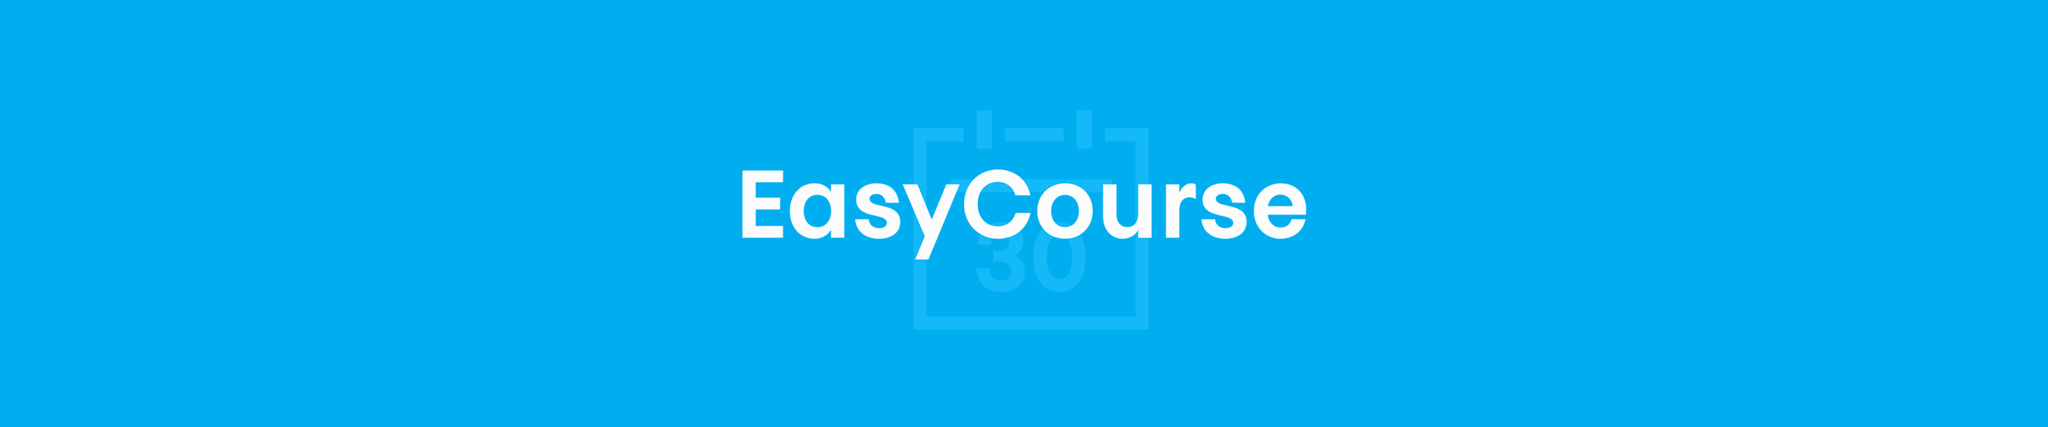 Cover easycourse header preview